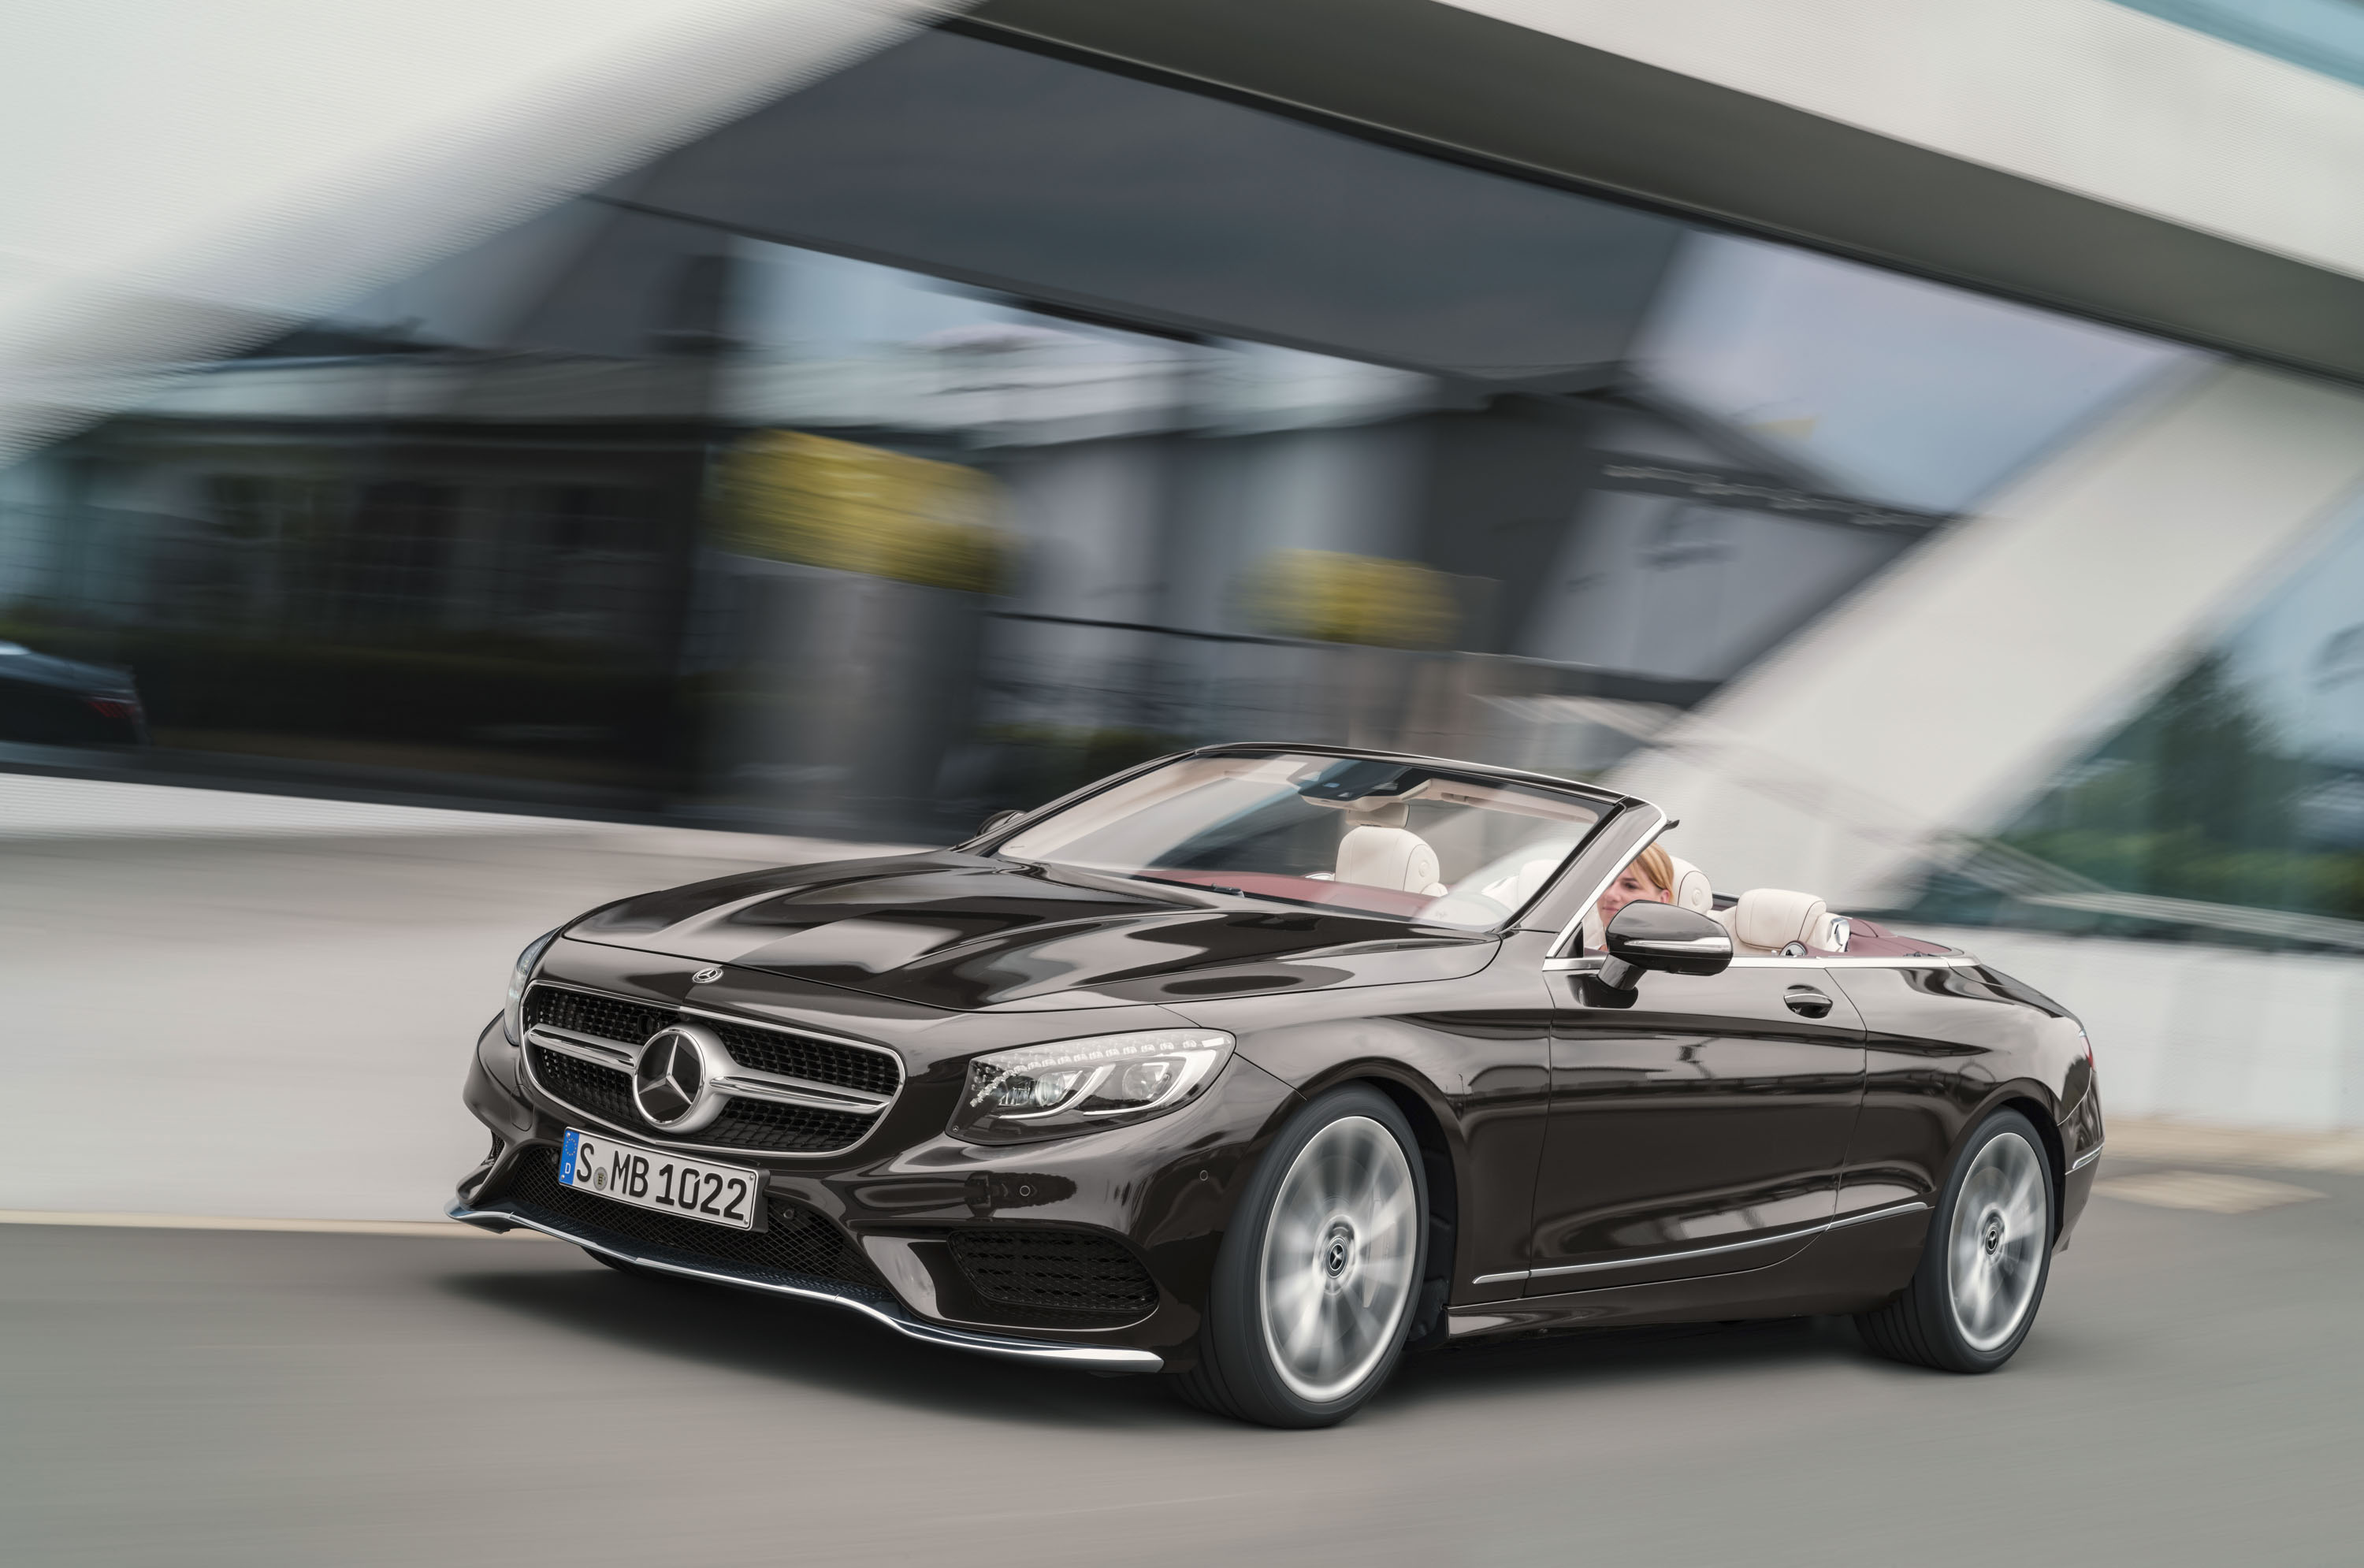 mercedes cab luxury bodystyle performance convertibles c gallery vehicles class cabriolet wp benz